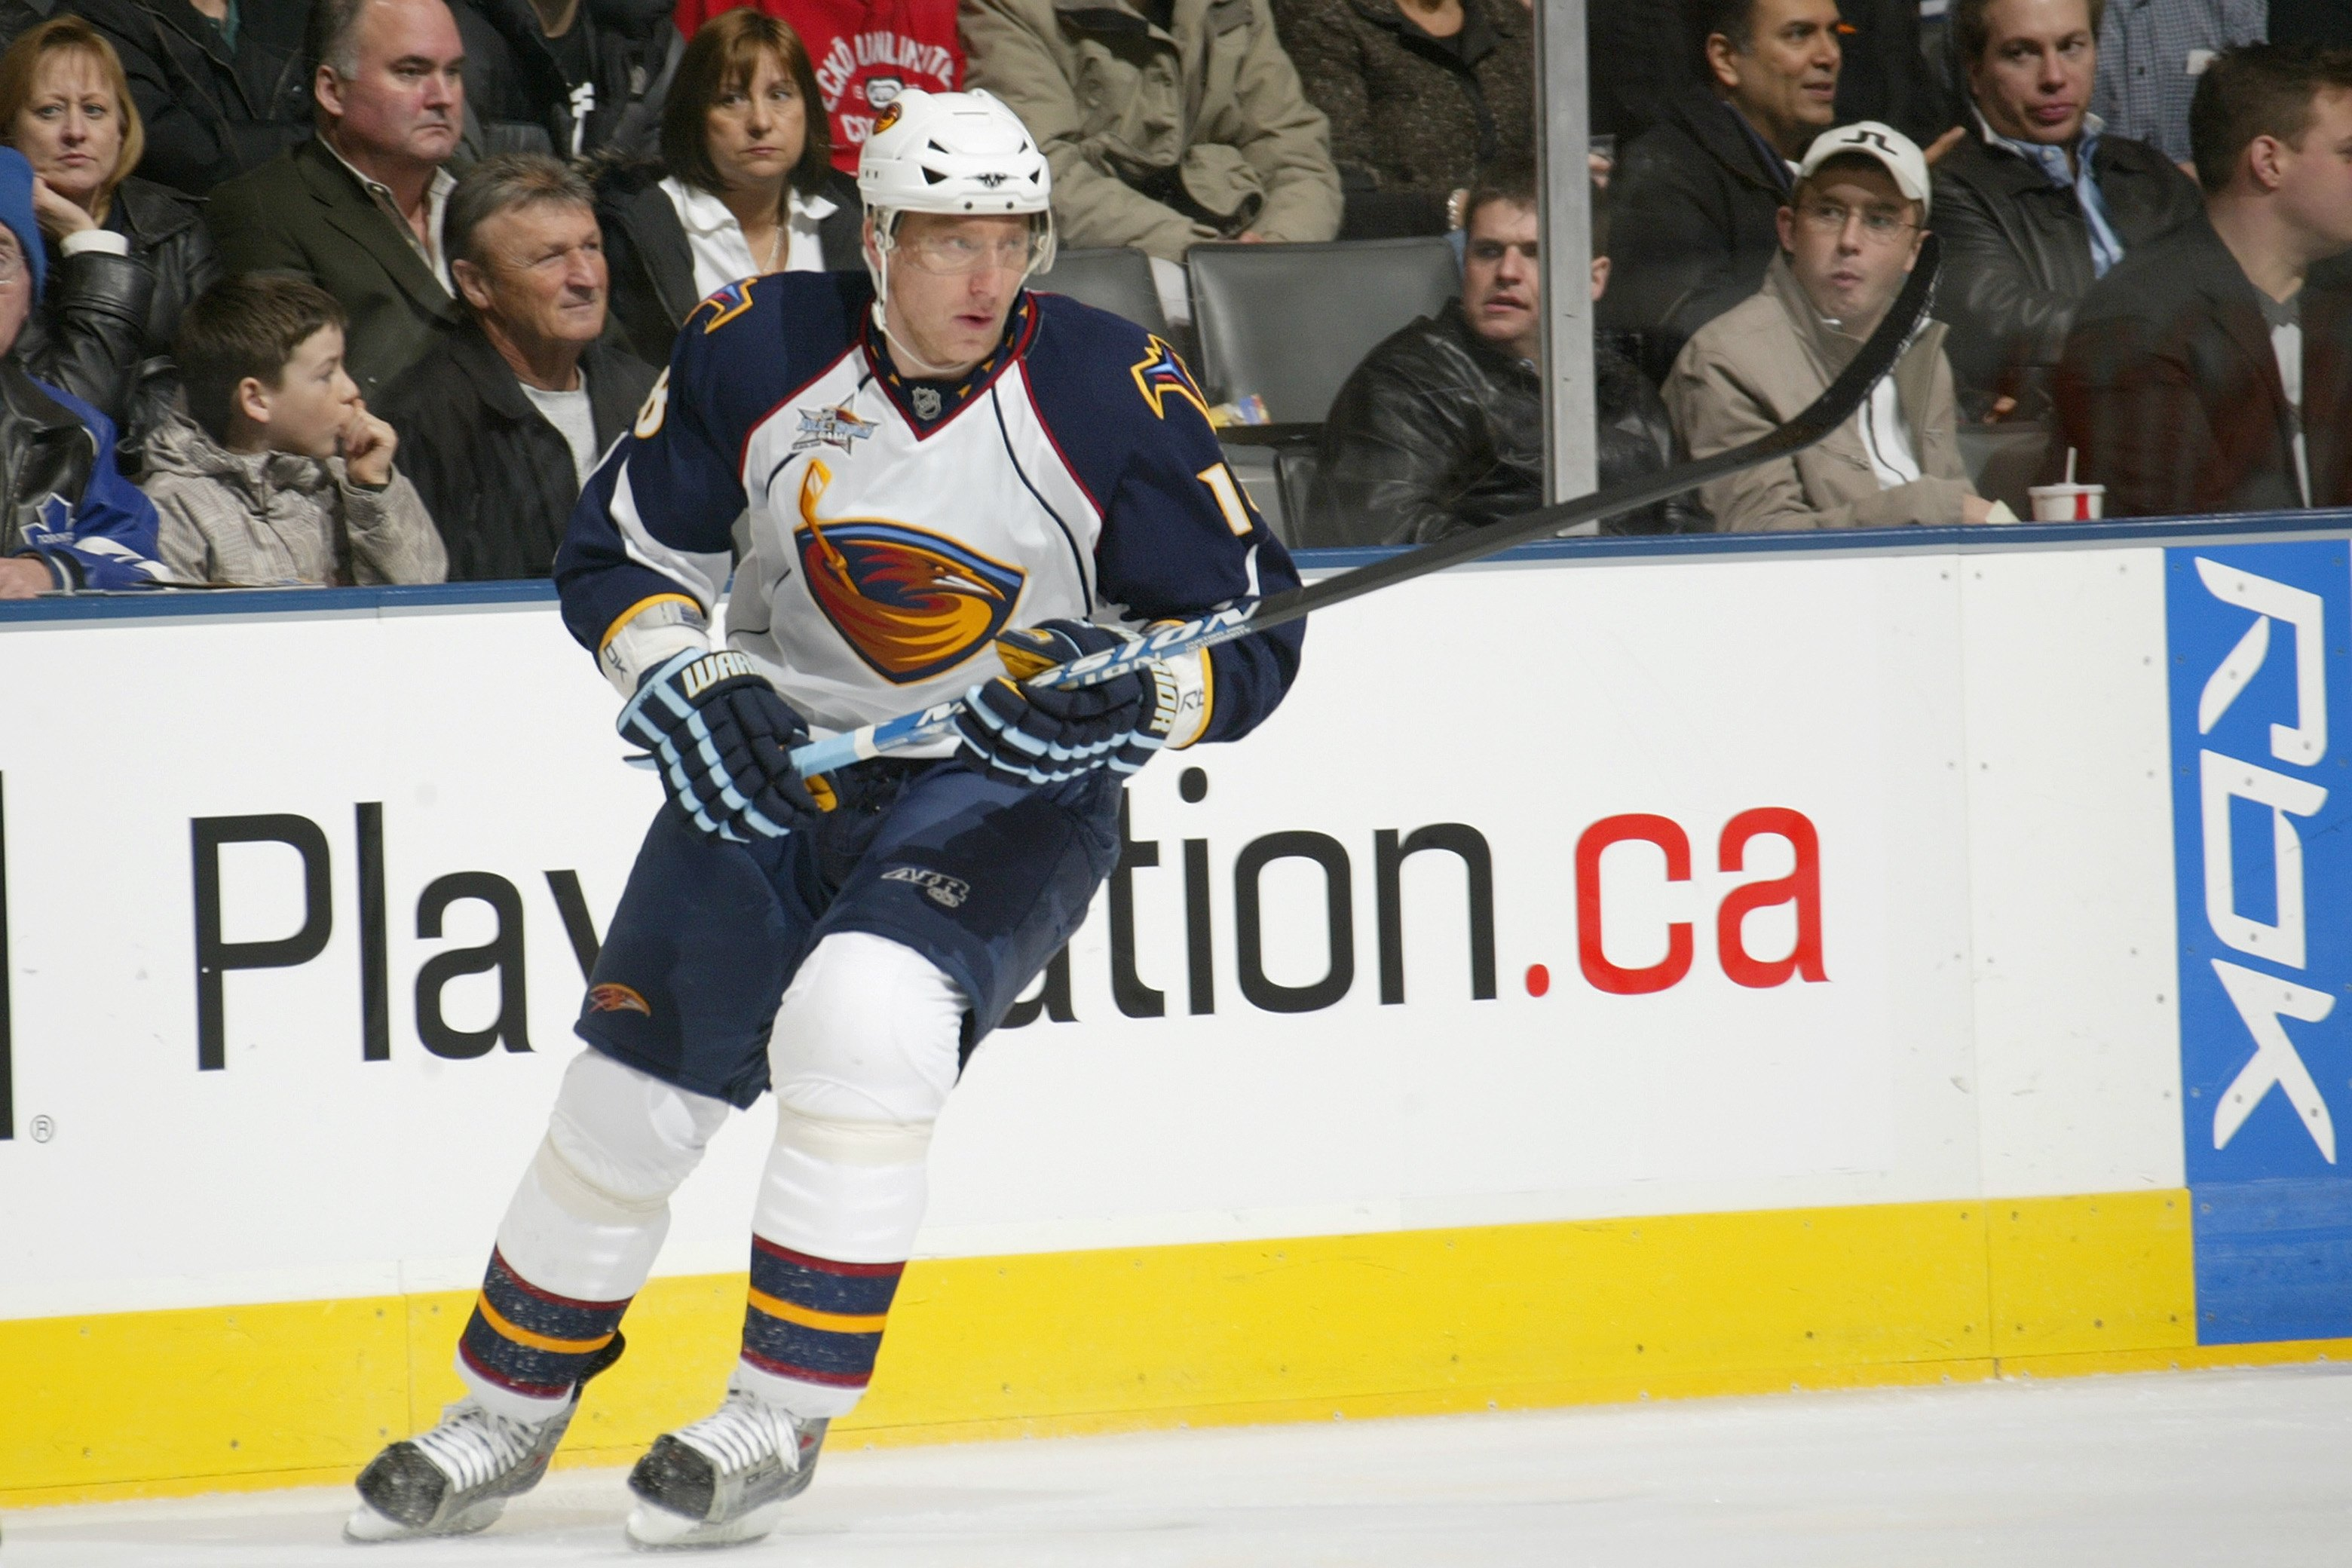 TORONTO - FEBRUARY 23:  Marian Hossa #18 of the Atlanta Thrashers skates against the Toronto Maple Leafs during their NHL game at Air Canada Centre on February 23, 2008 in Toronto, Ontario. (Photo by Dave Sandford/Getty Images)